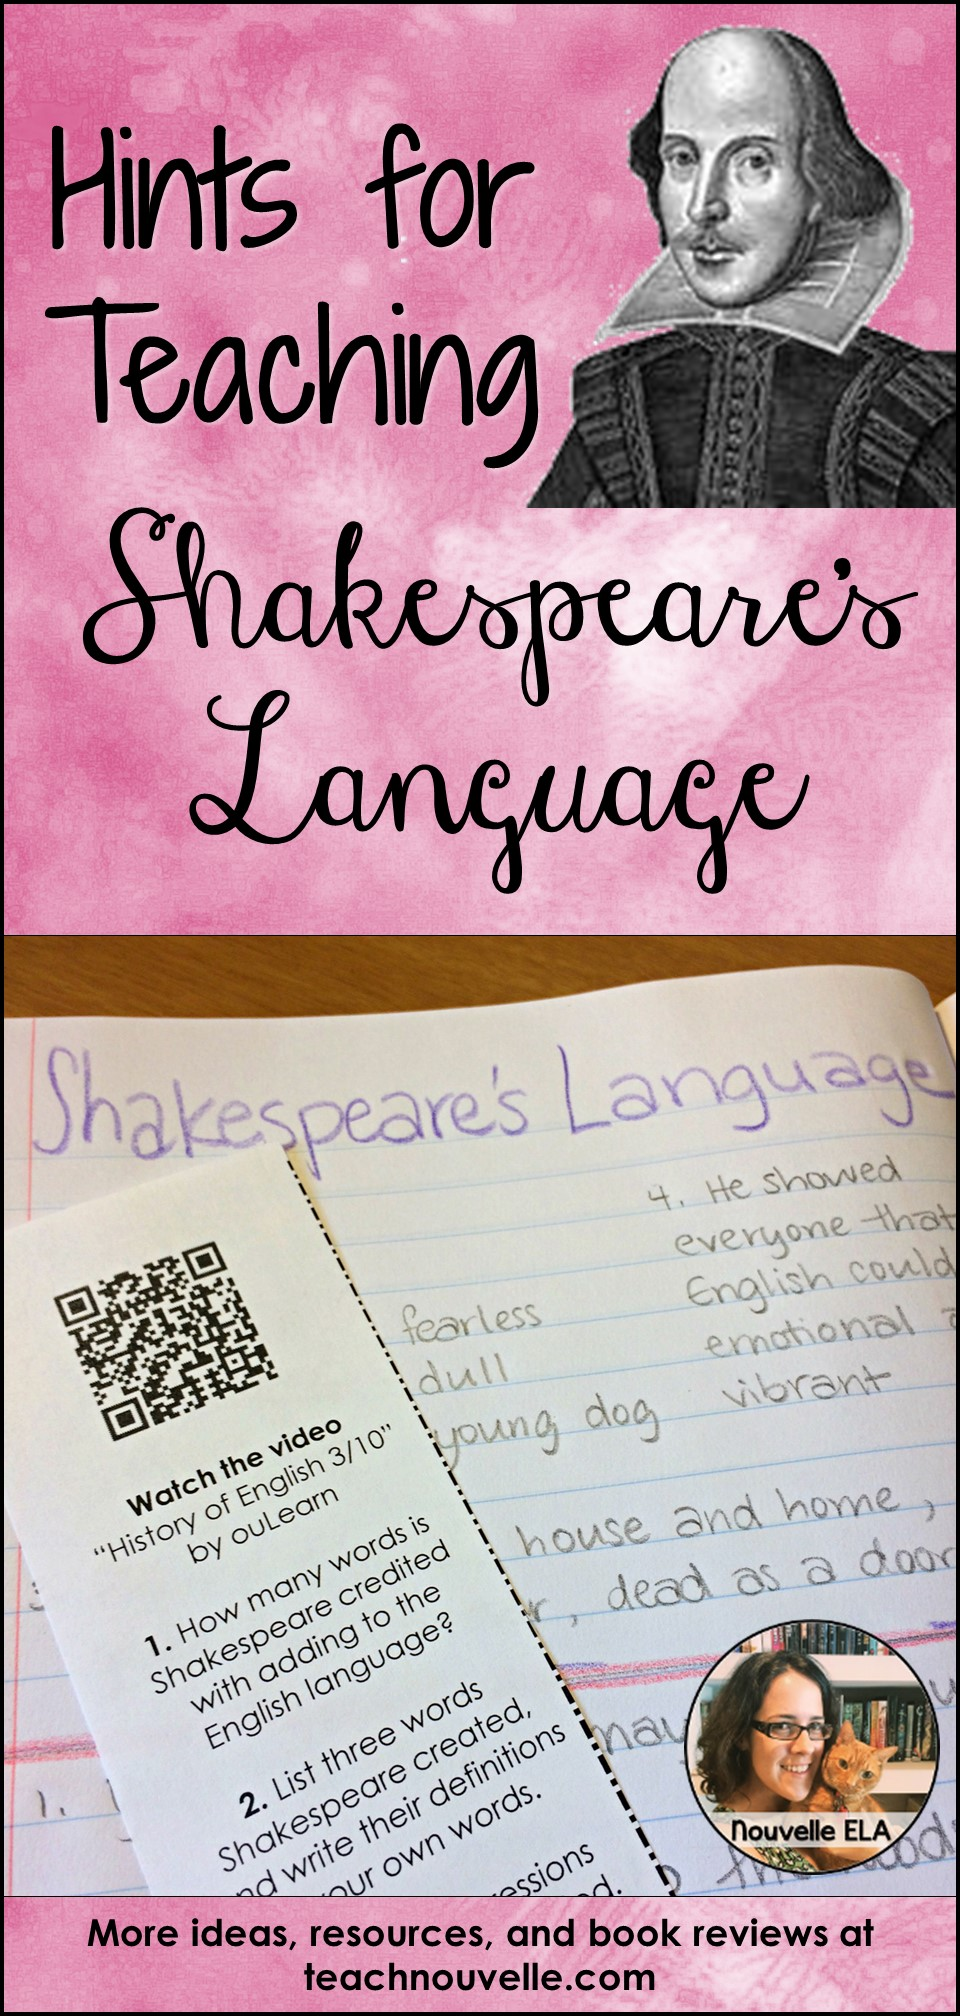 Help students understand Shakespeare's Language by breaking down the process. Use these engaging activities to introduce the vocabulary, grammar, and rhythms used in his language. Students will also explore Shakespeare's influence on the English language and do some translation. Blog post.